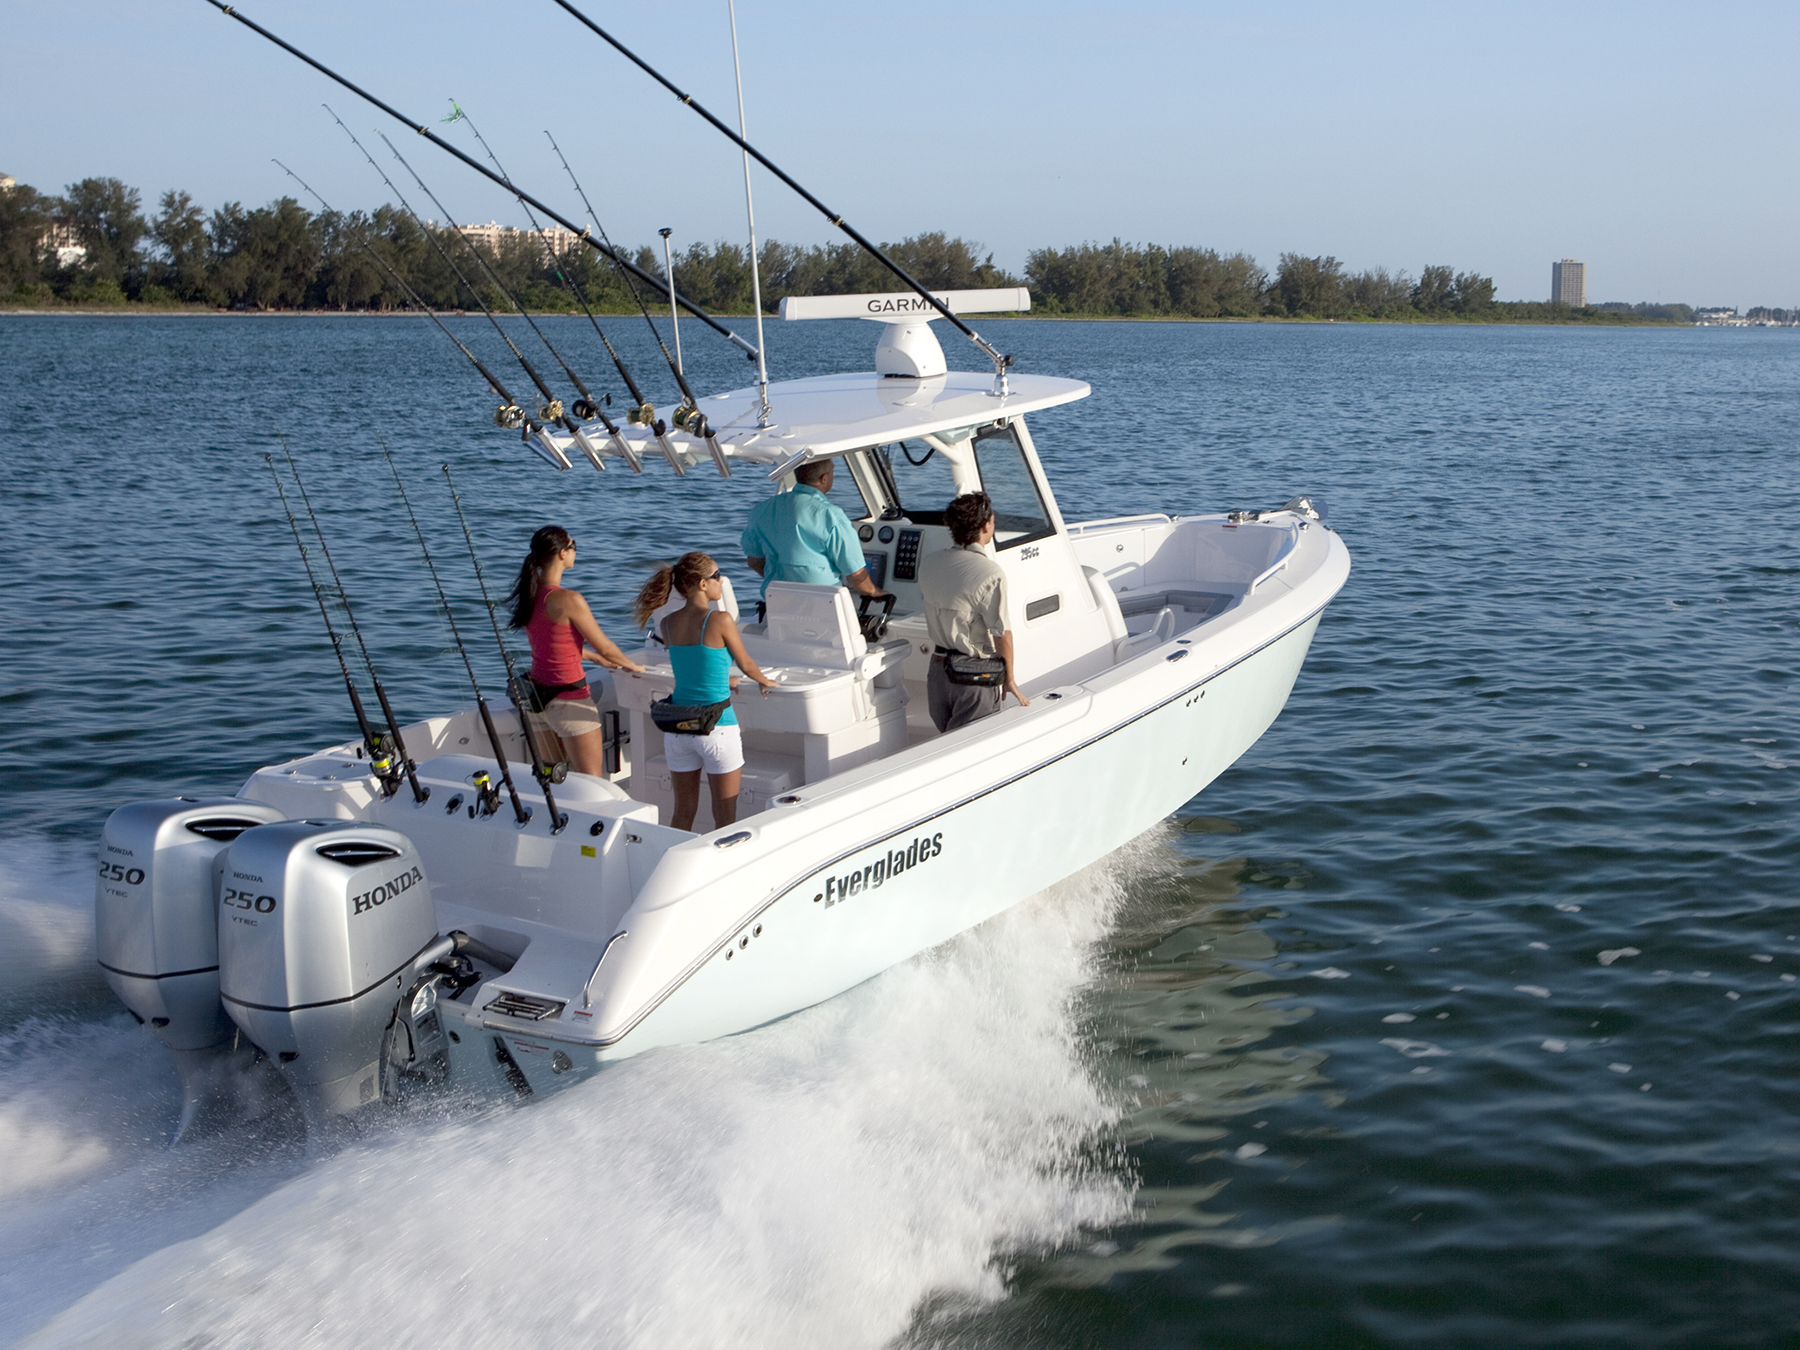 Action shot of white boat with 4 passengers in the water